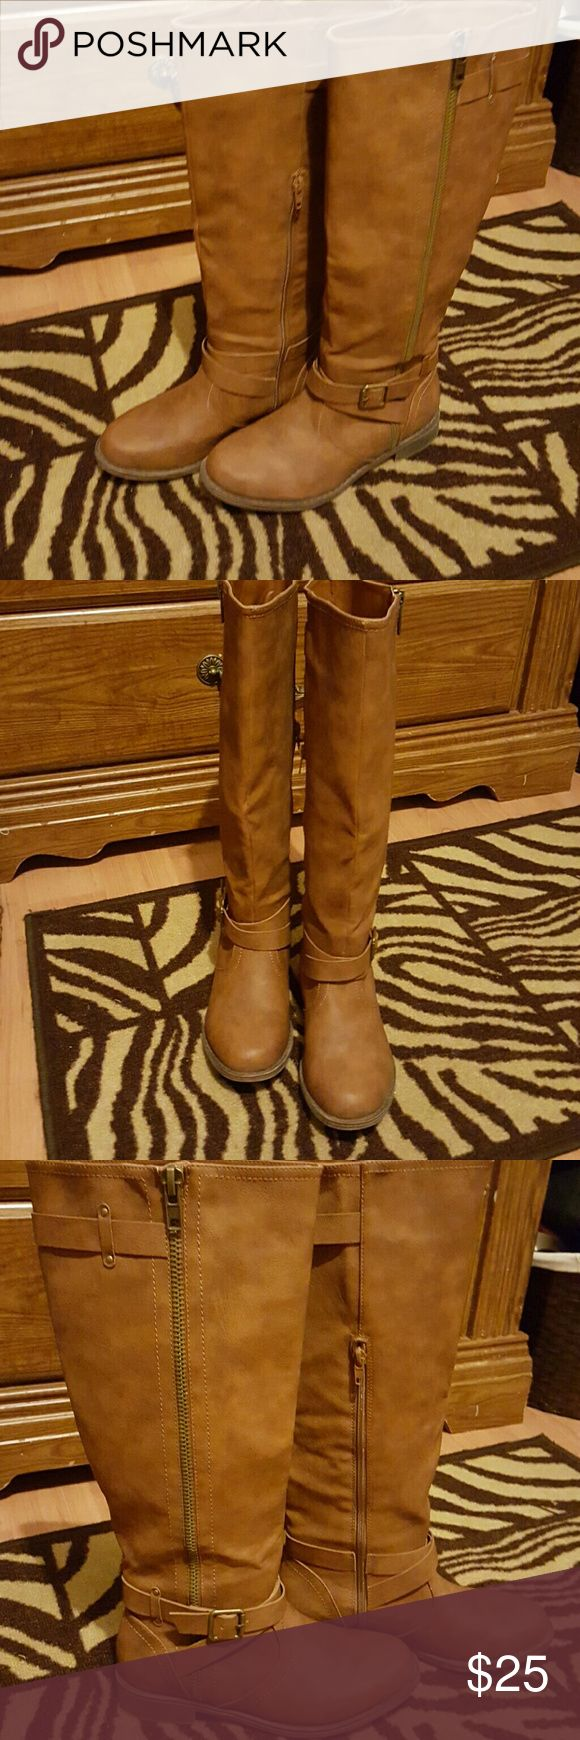 NWOT Justfab tall brown boots. NWOT Boots from JUSTFAB. Style code RUFINA. Has full-length zipper on outer side of boot & half-zip on inner side. Worn boots once per last photo. Hardly worn. They were too small! Size 7  **OFFERS WELCOME ~NO LOWBALL BIDS PLEASE ** JustFab Shoes Heeled Boots